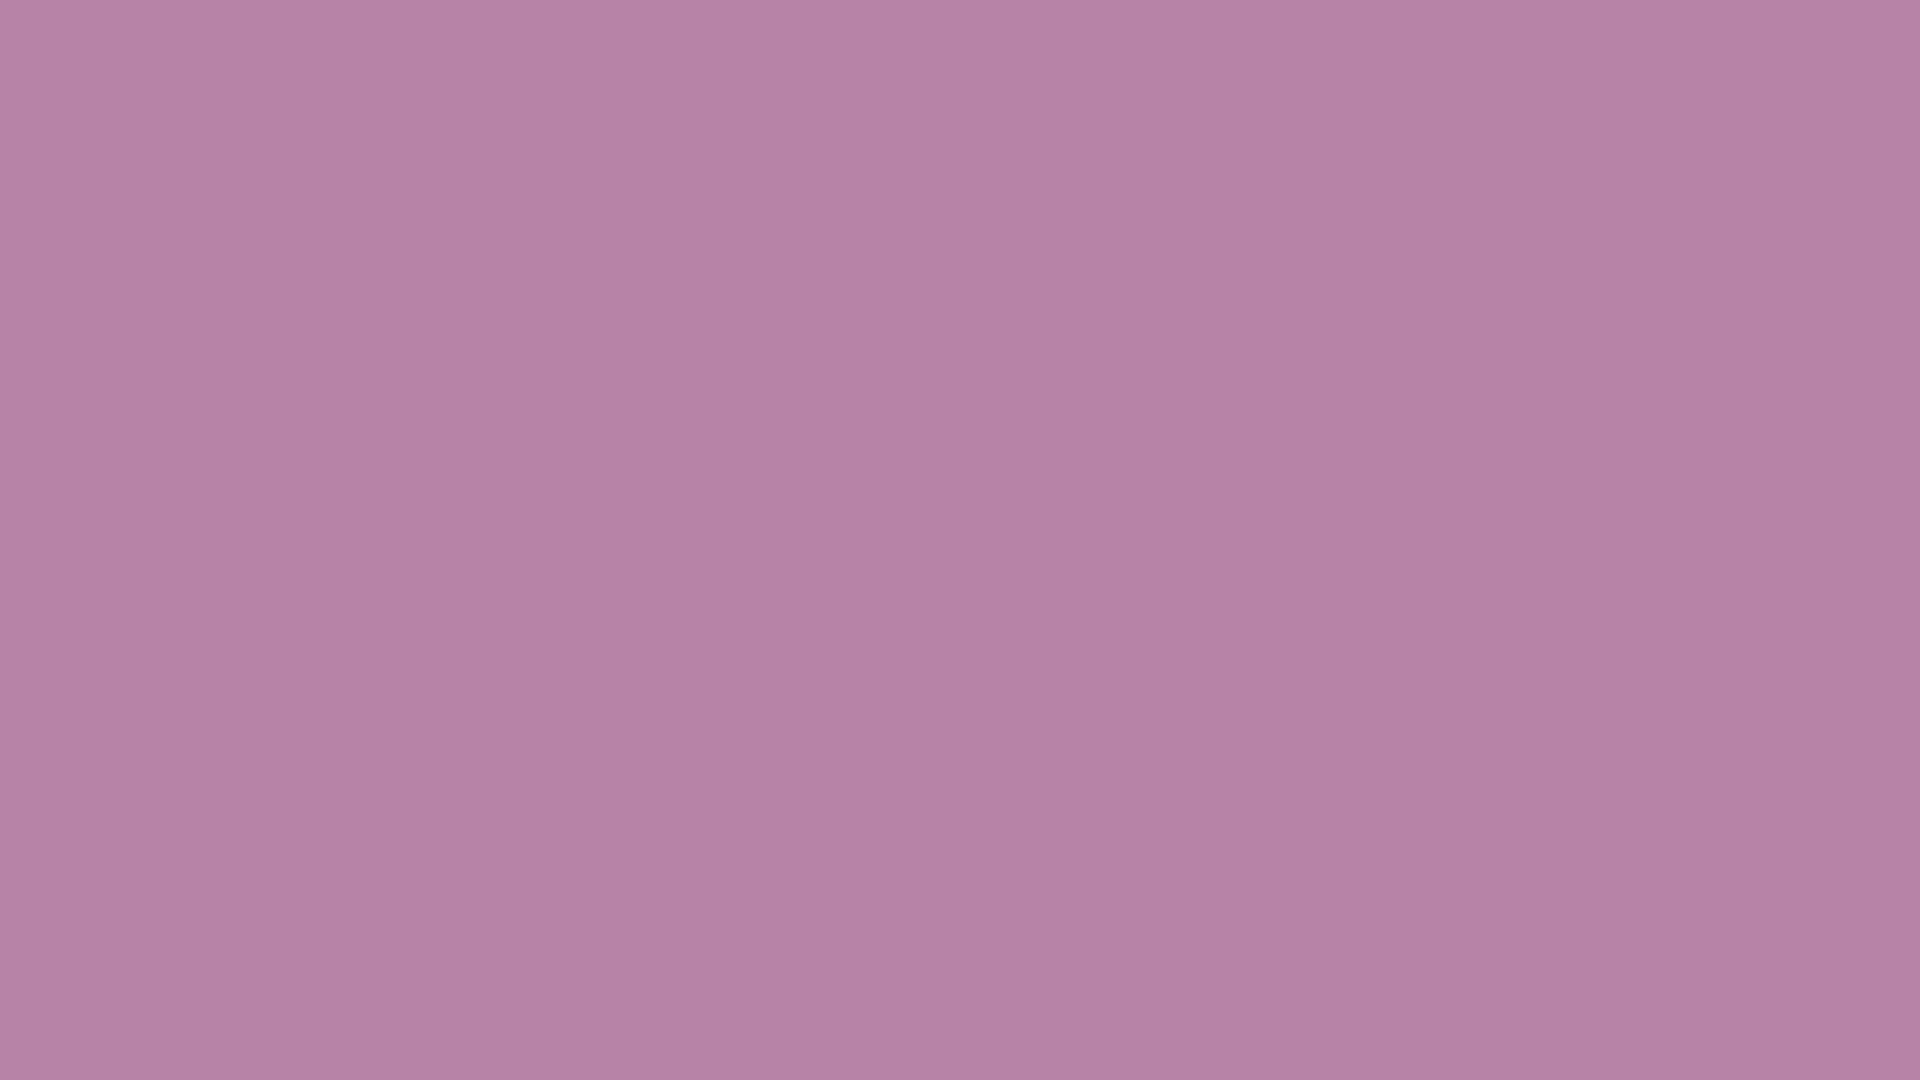 1920x1080 opera mauve solid color background